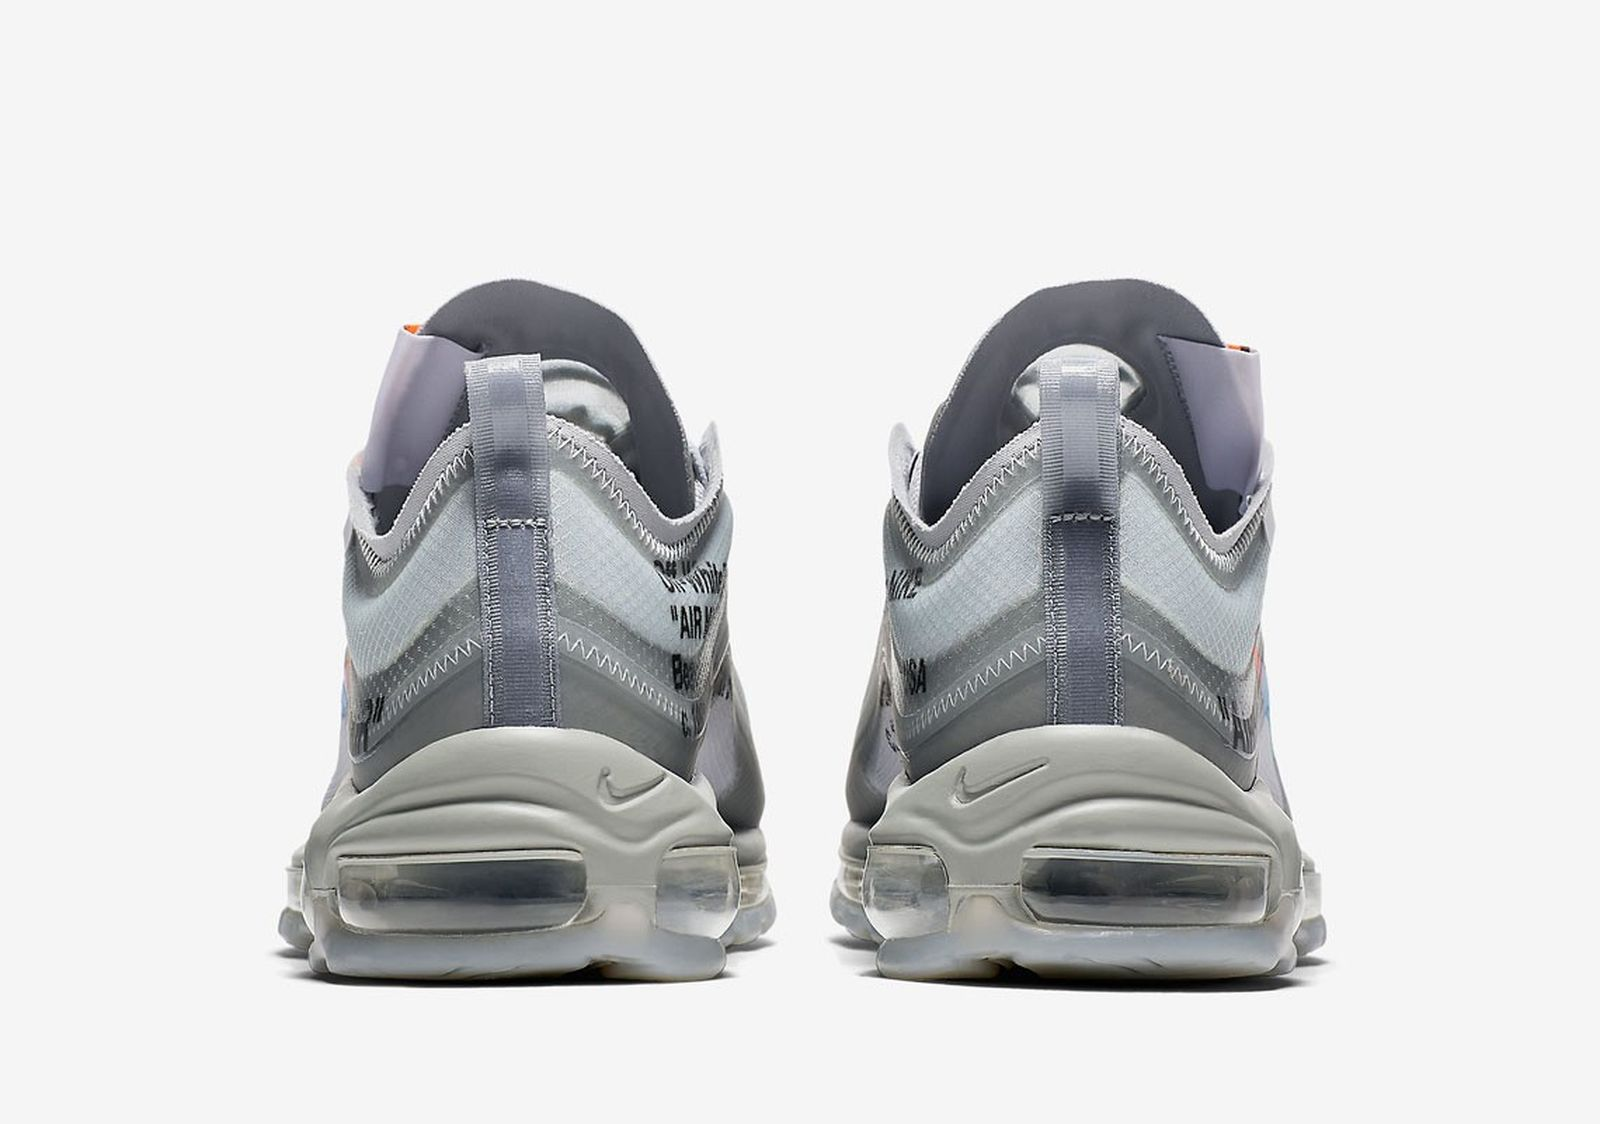 off-white-nike-air-max-97-menta-release-date-price-06